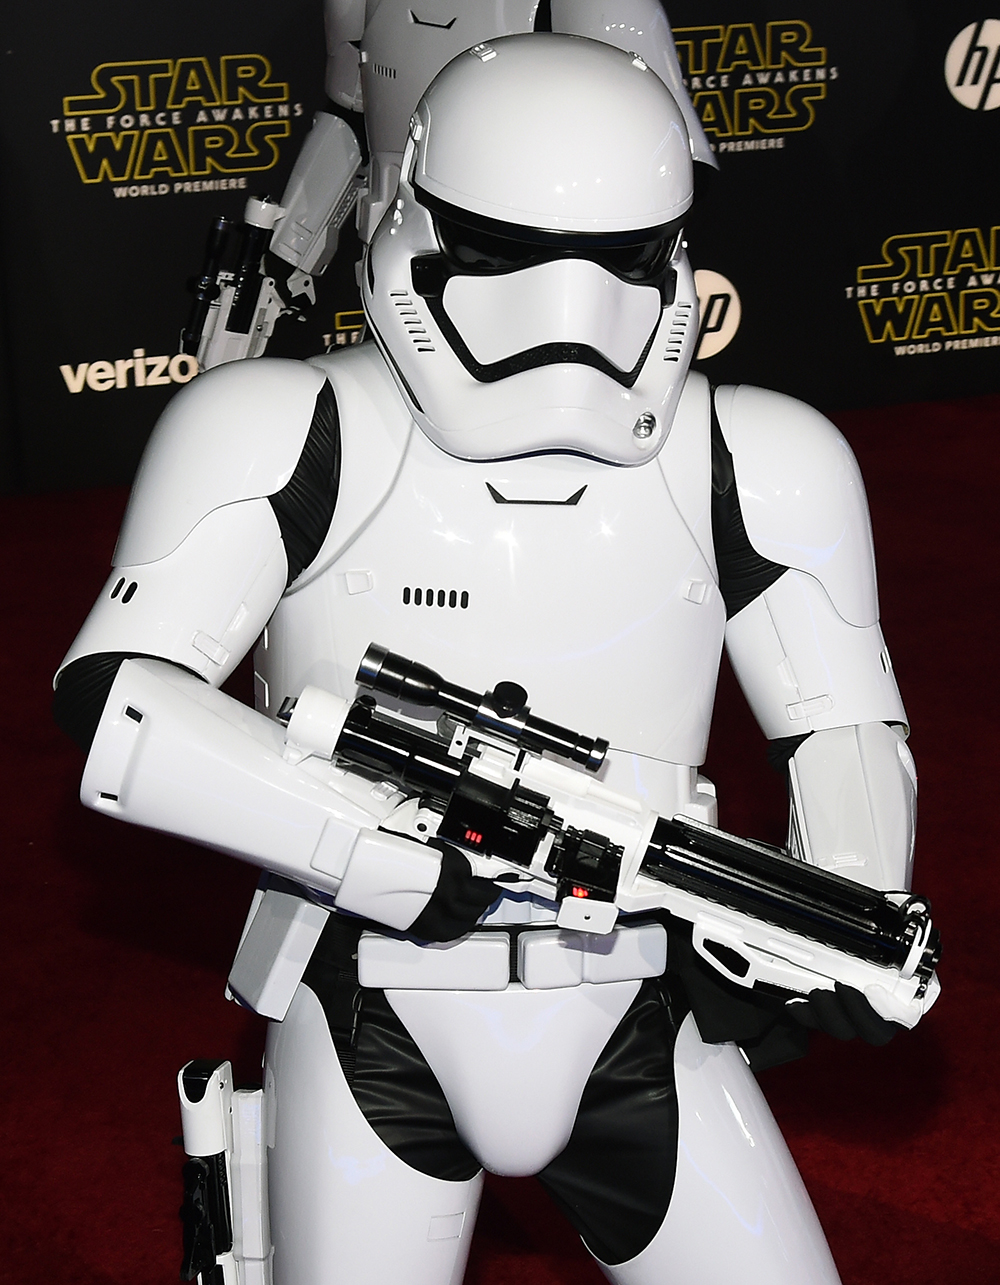 """HOLLYWOOD, CA - DECEMBER 14: A stormtrooper character walks down the red carpet at the premiere of Walt Disney Pictures and Lucasfilm's """"Star Wars: The Force Awakens"""" at the Dolby Theatre on December 14, 2015 in Hollywood, California. Ethan Miller/Getty Images/AFP"""